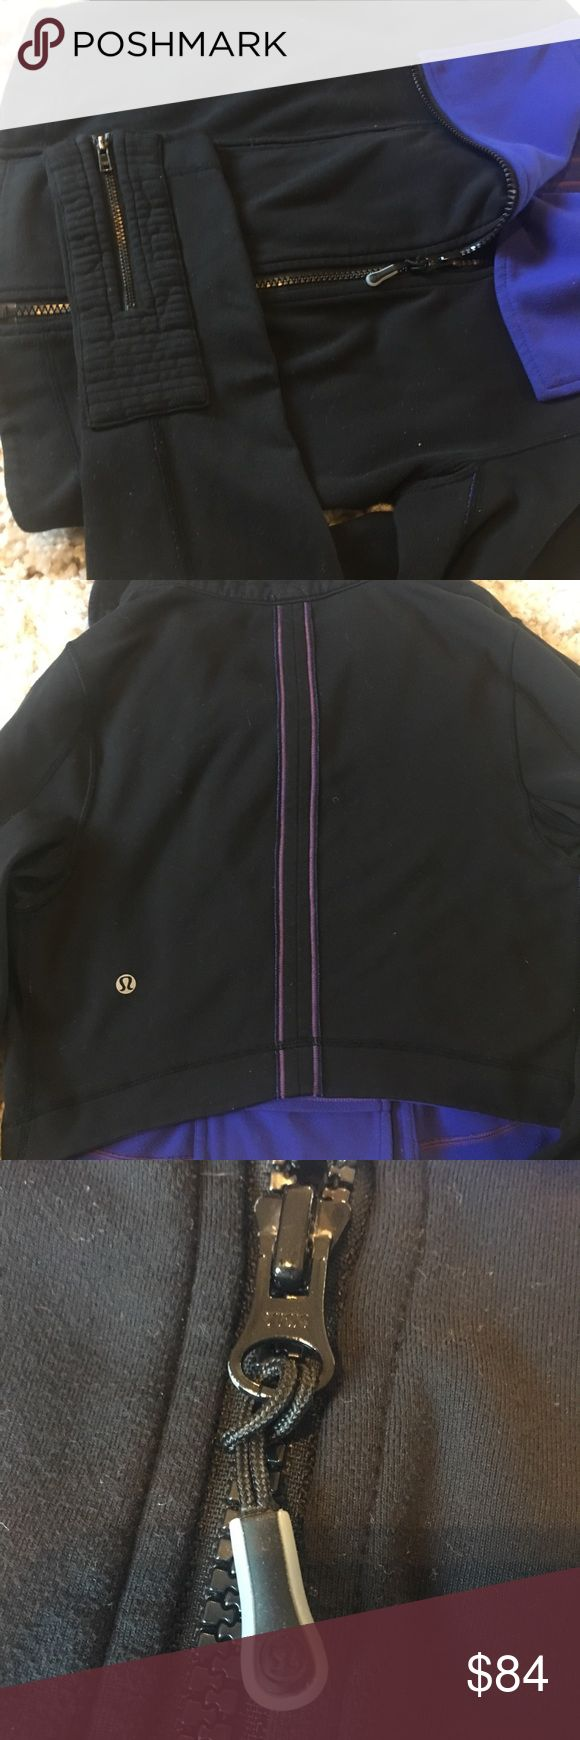 Lululemon principle jacket extremely rare !!! Excellent condition Lululemon Cropped principle jacket  Stored in smoke & pet free location Good pre-owned condition It is a cropped moto style with large collar, asymmetric zip and quilting and zippers at the sleeves. lululemon athletica Jackets & Coats